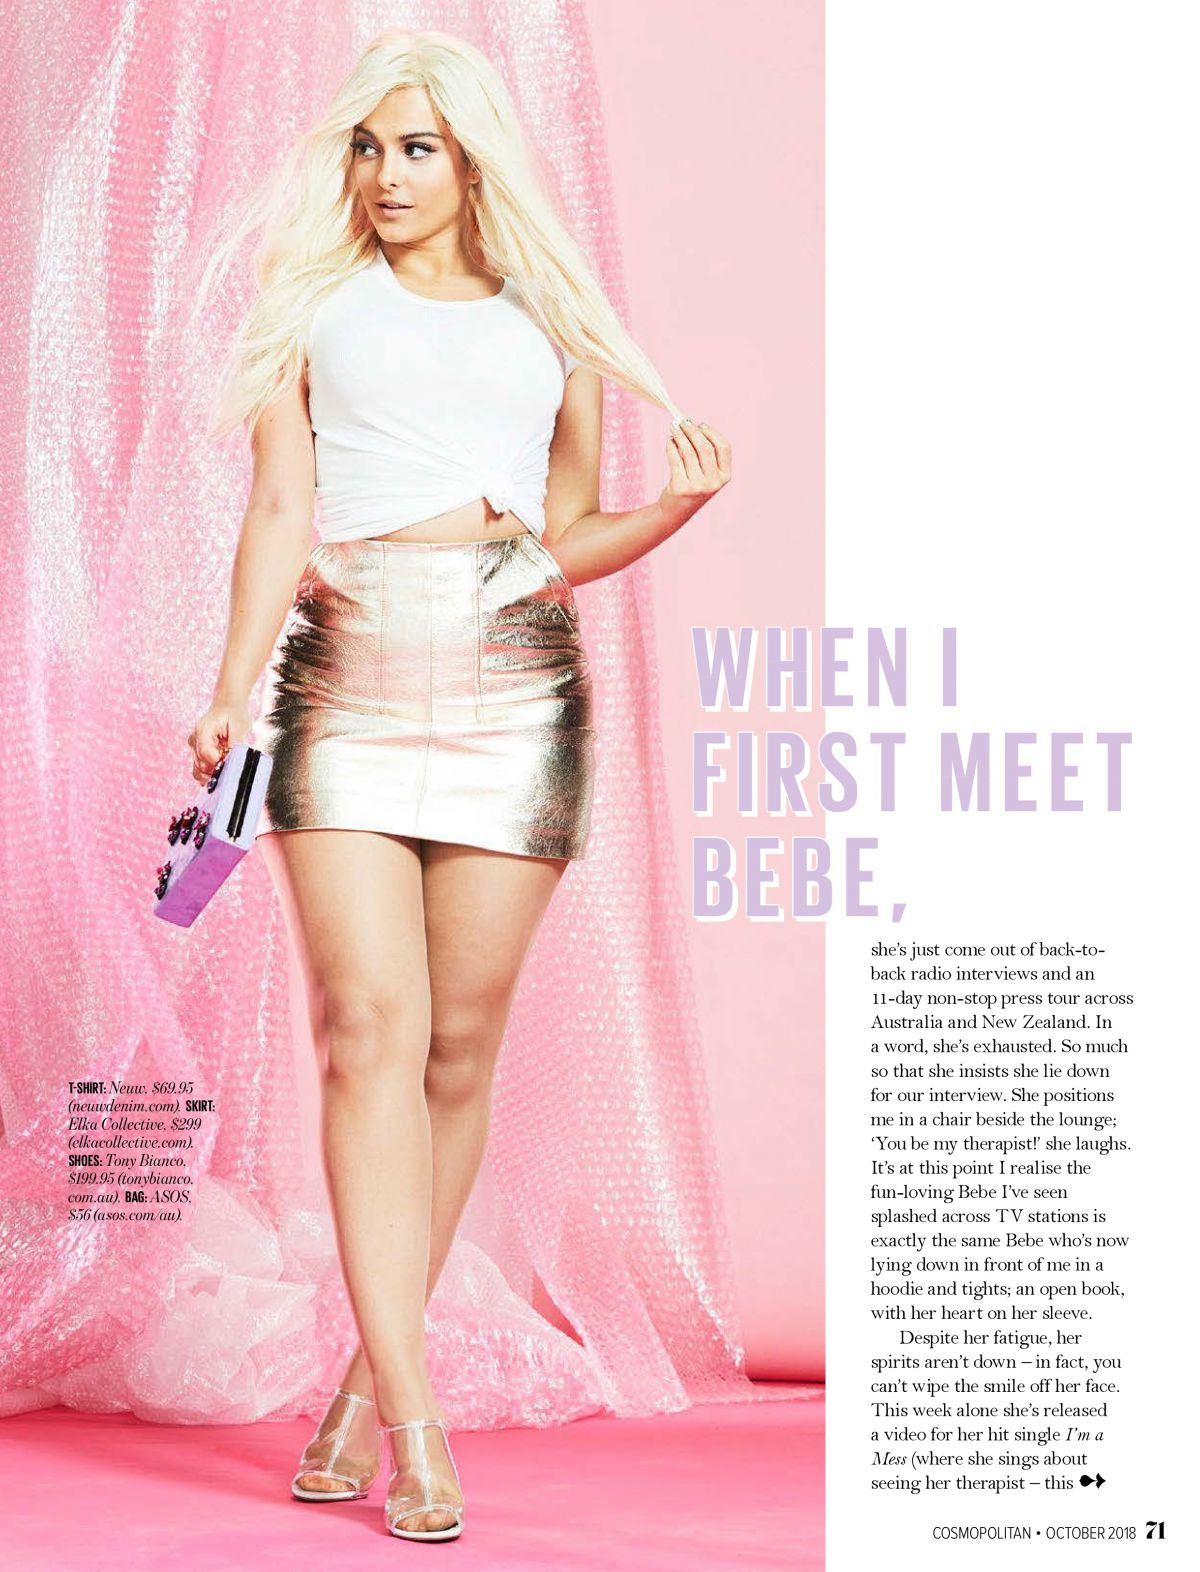 BEBE REXHA in Cosmopolitan Magazine, Australia October 2018